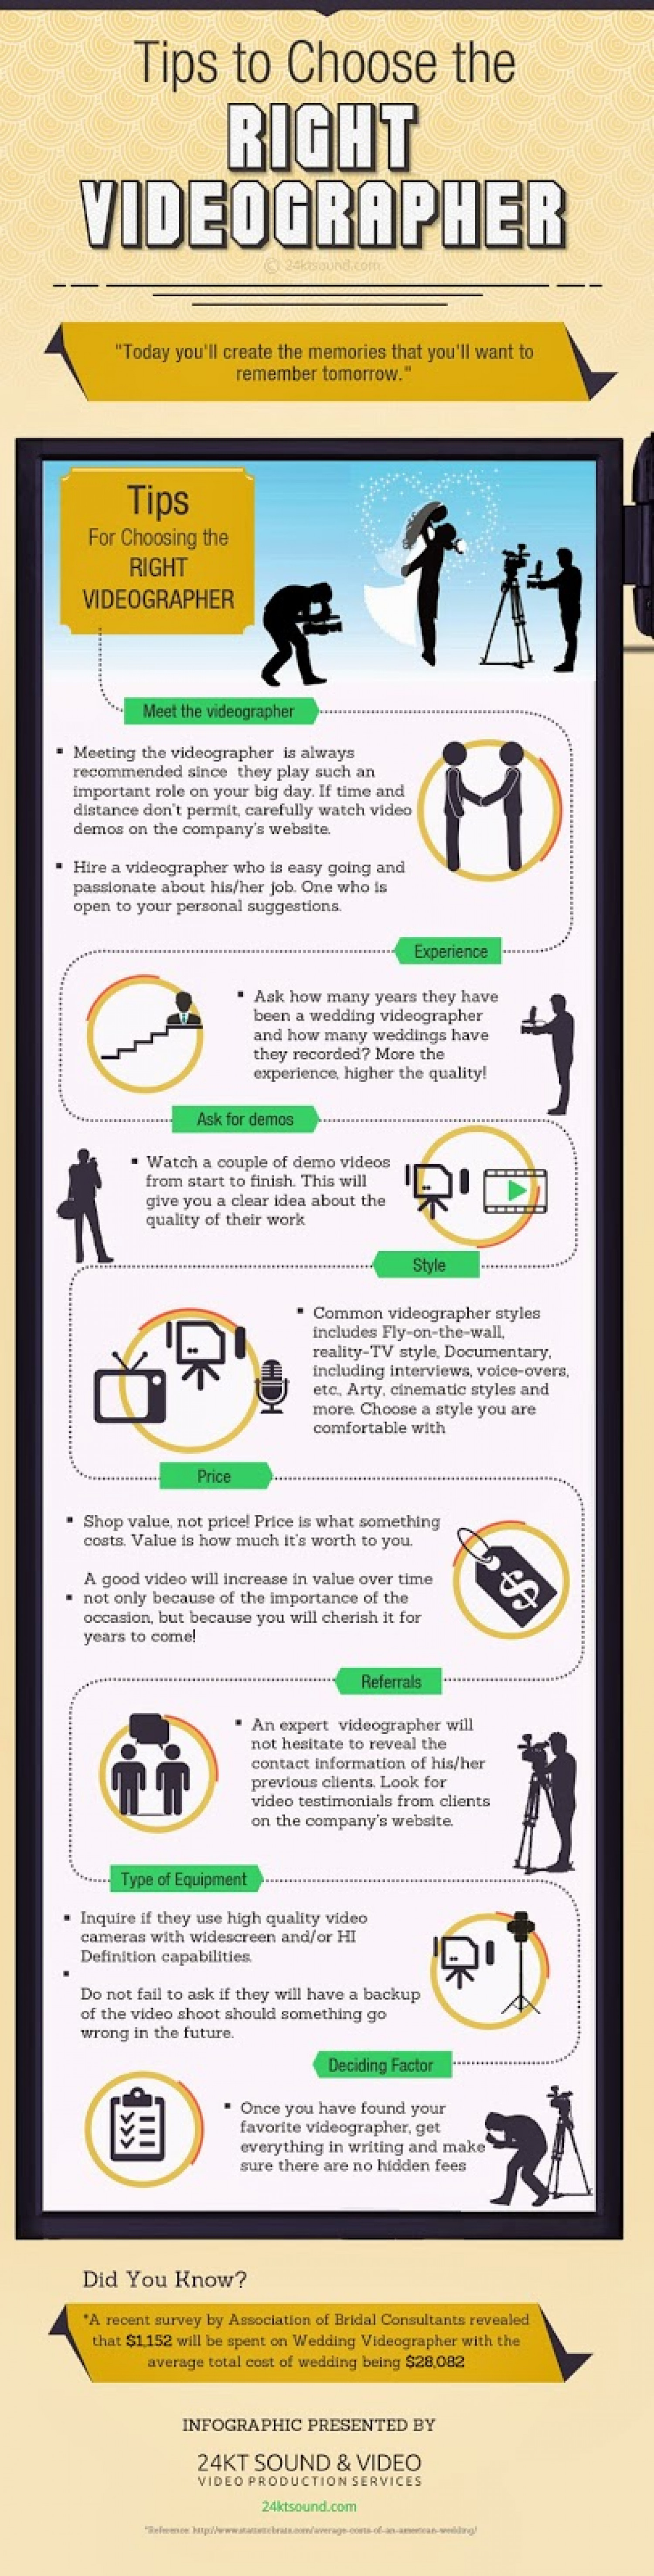 Tips to Choose the Right Videographer Infographic